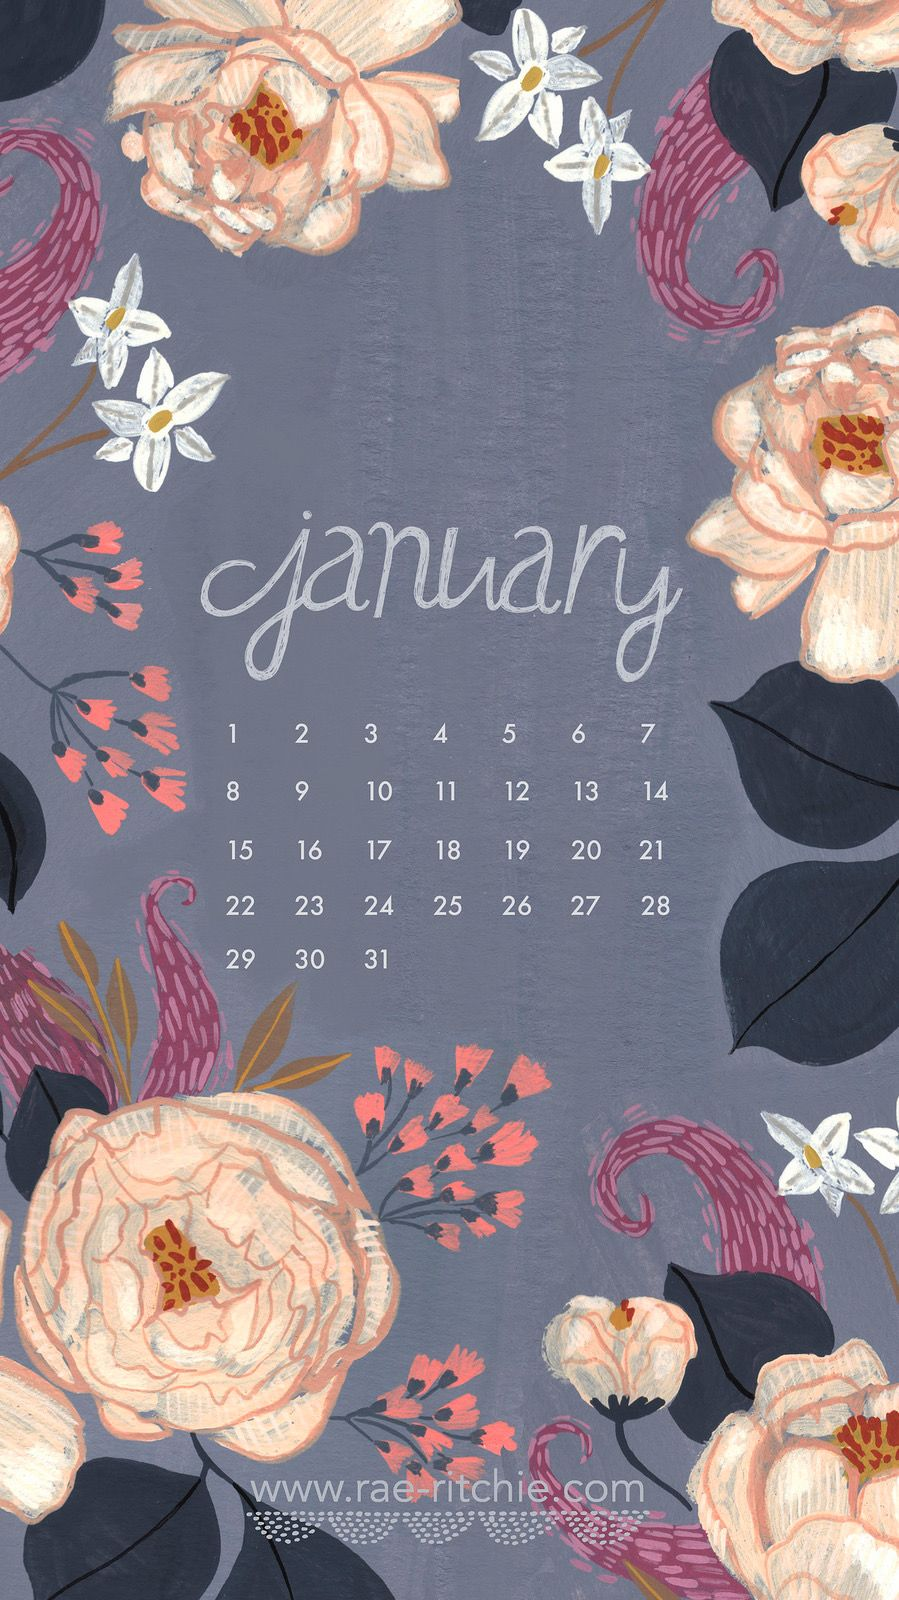 Calendar Wallpaper Iphone : January calendar wallpaper imagery